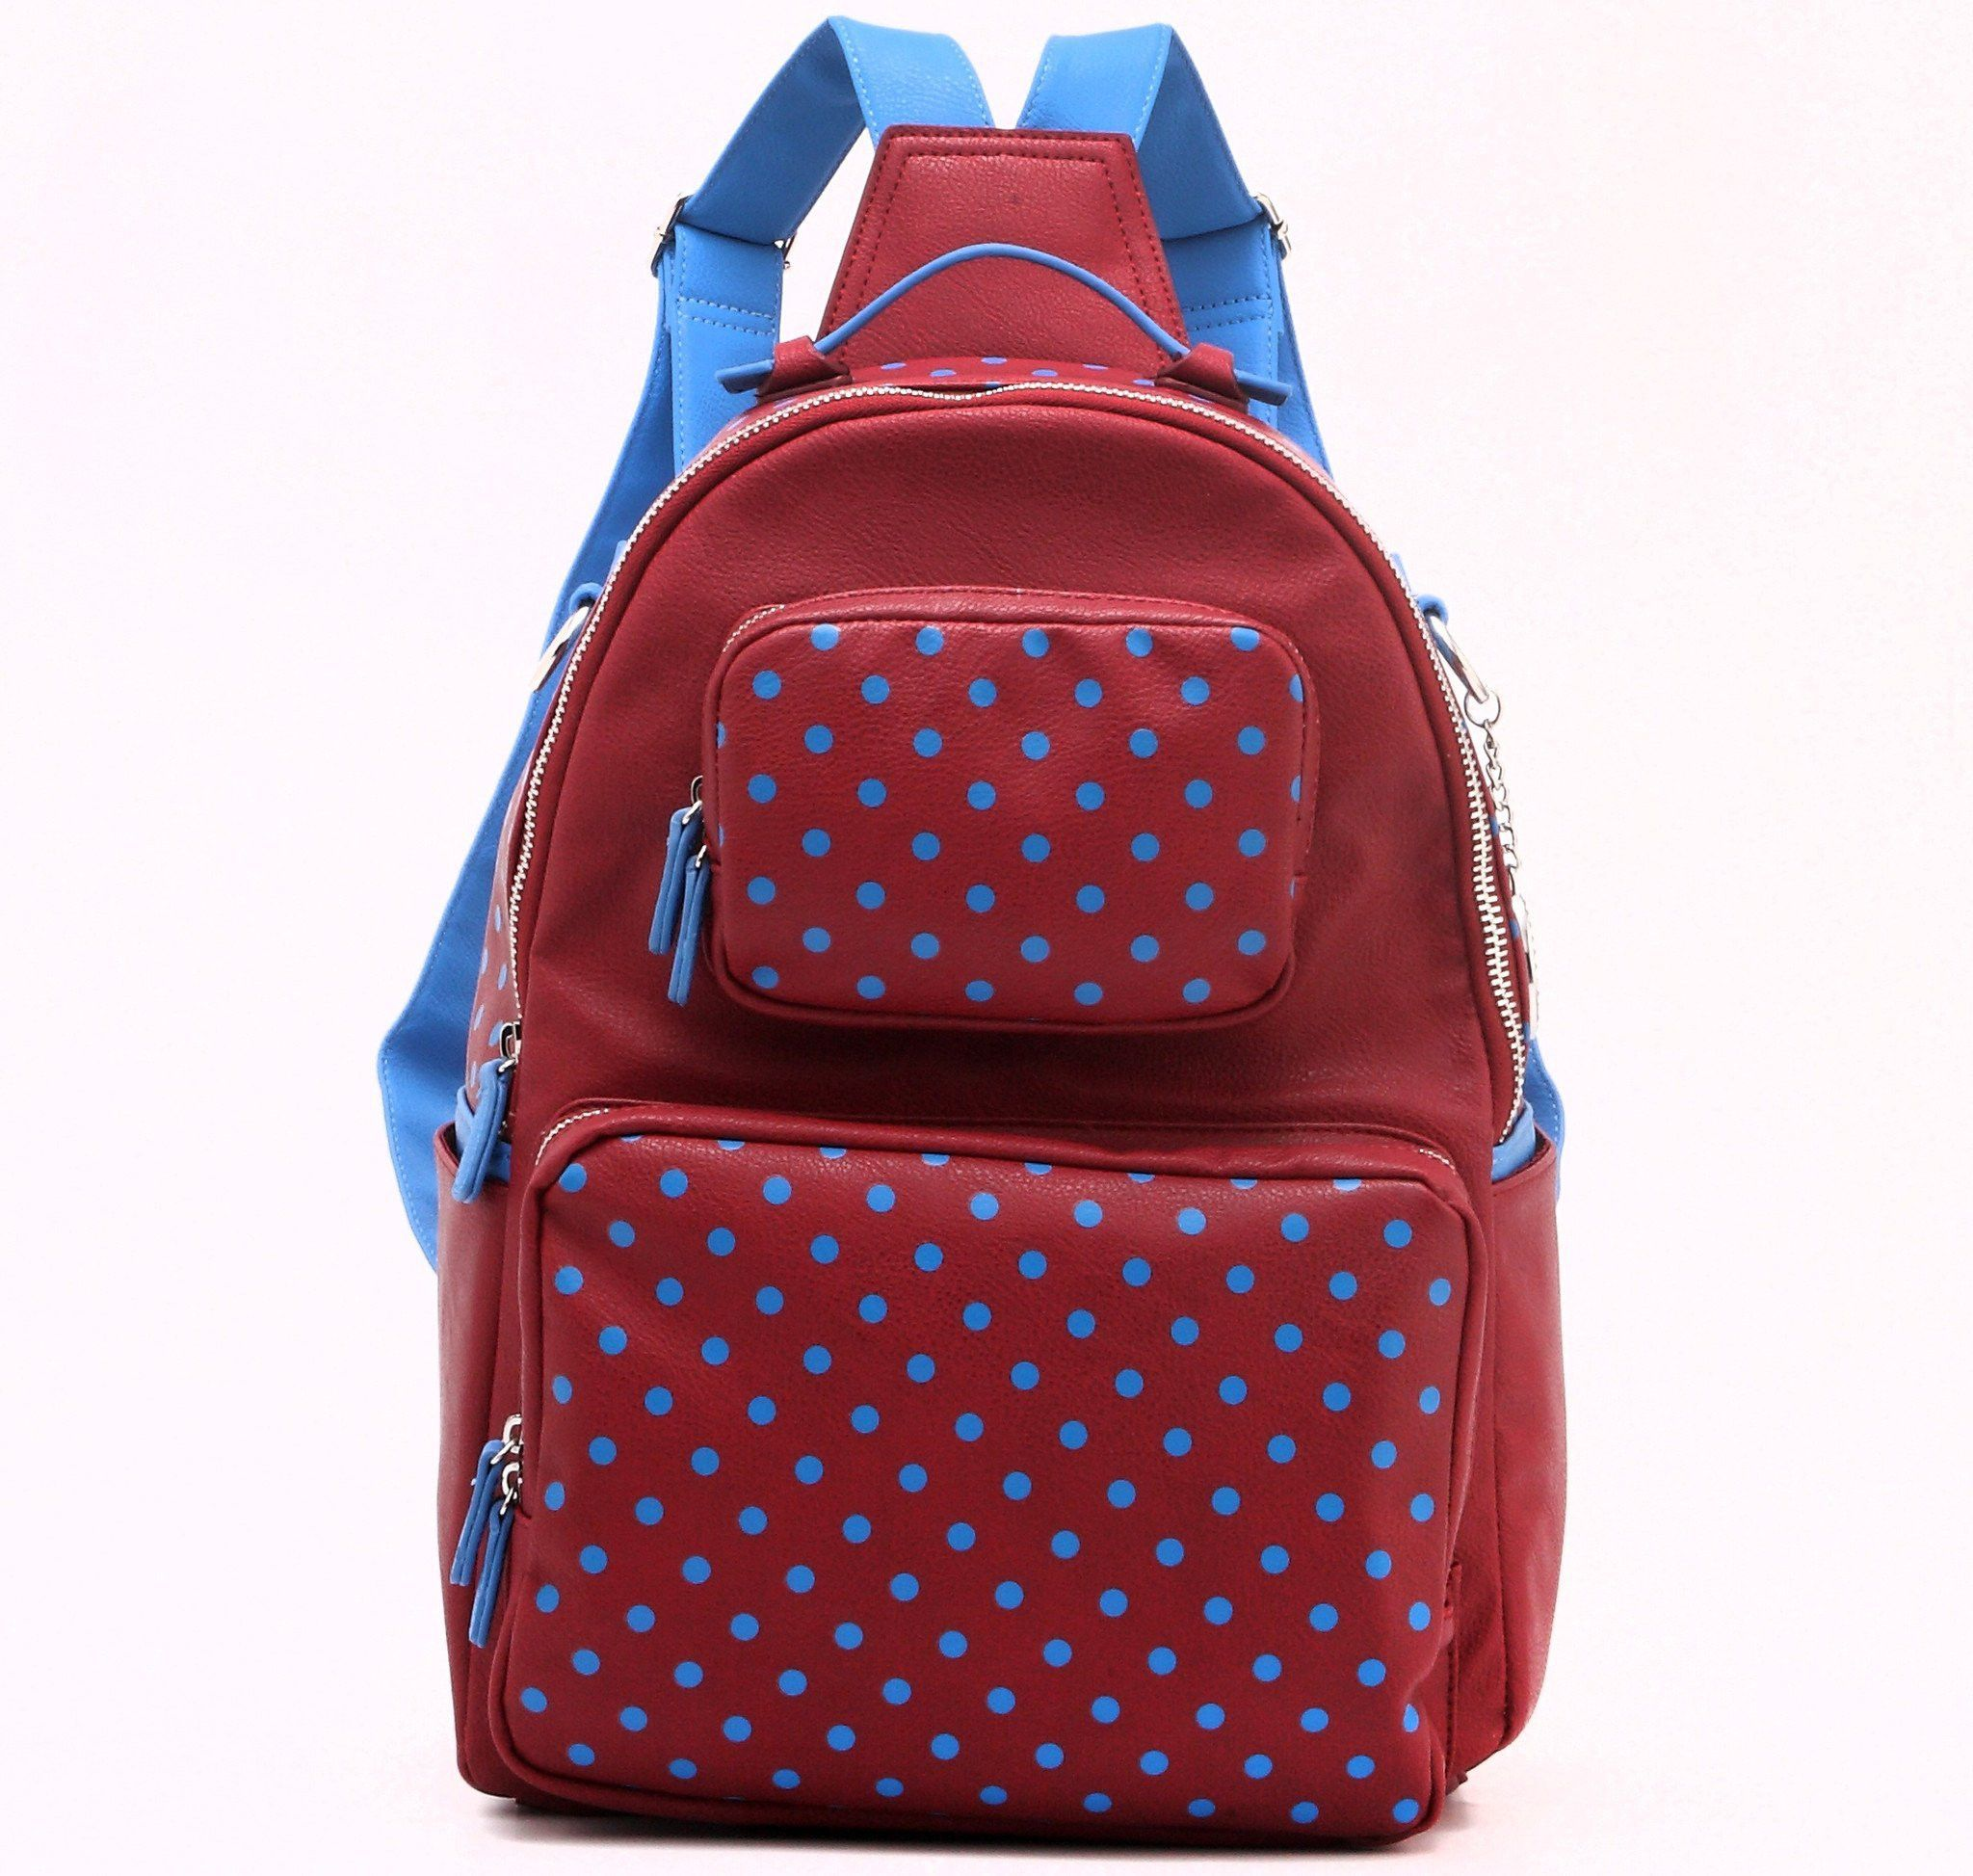 Backpack-Large-Maroon/French Blue-Natalie Michelle